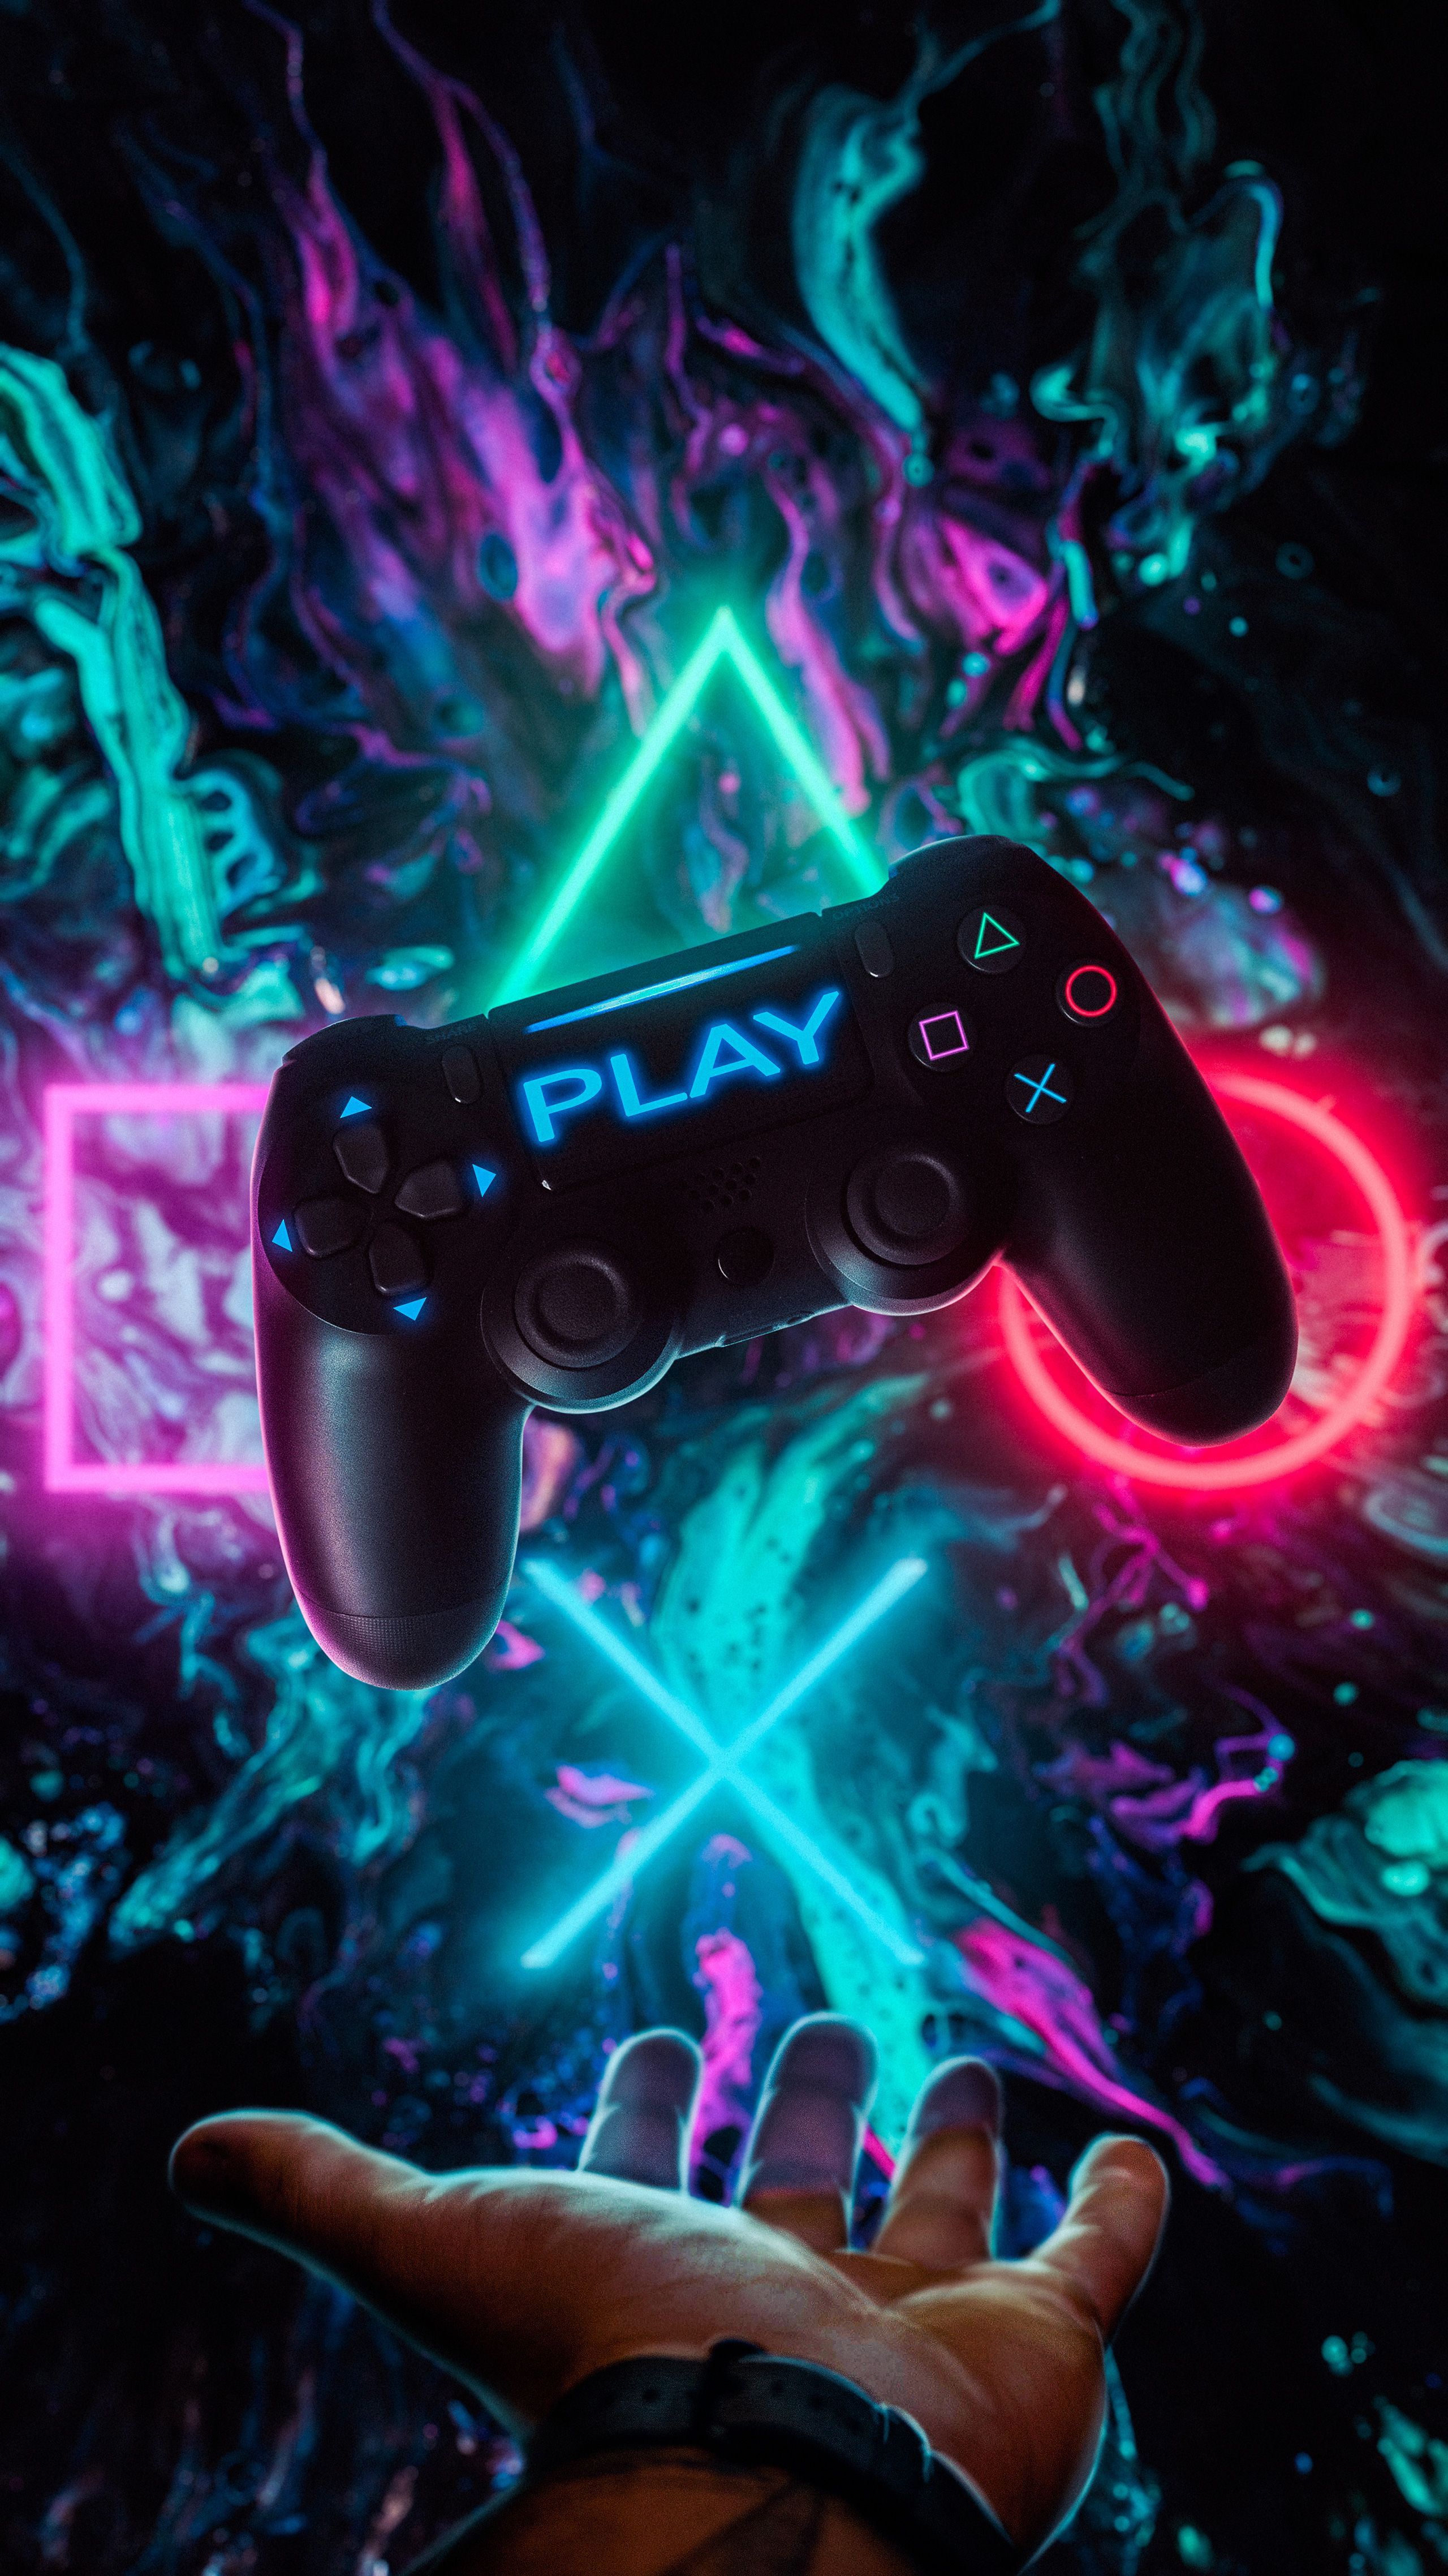 Games Controller Amoled Wallpaper Game Wallpaper Iphone 4k Gaming Wallpaper Best Gaming Wallpapers